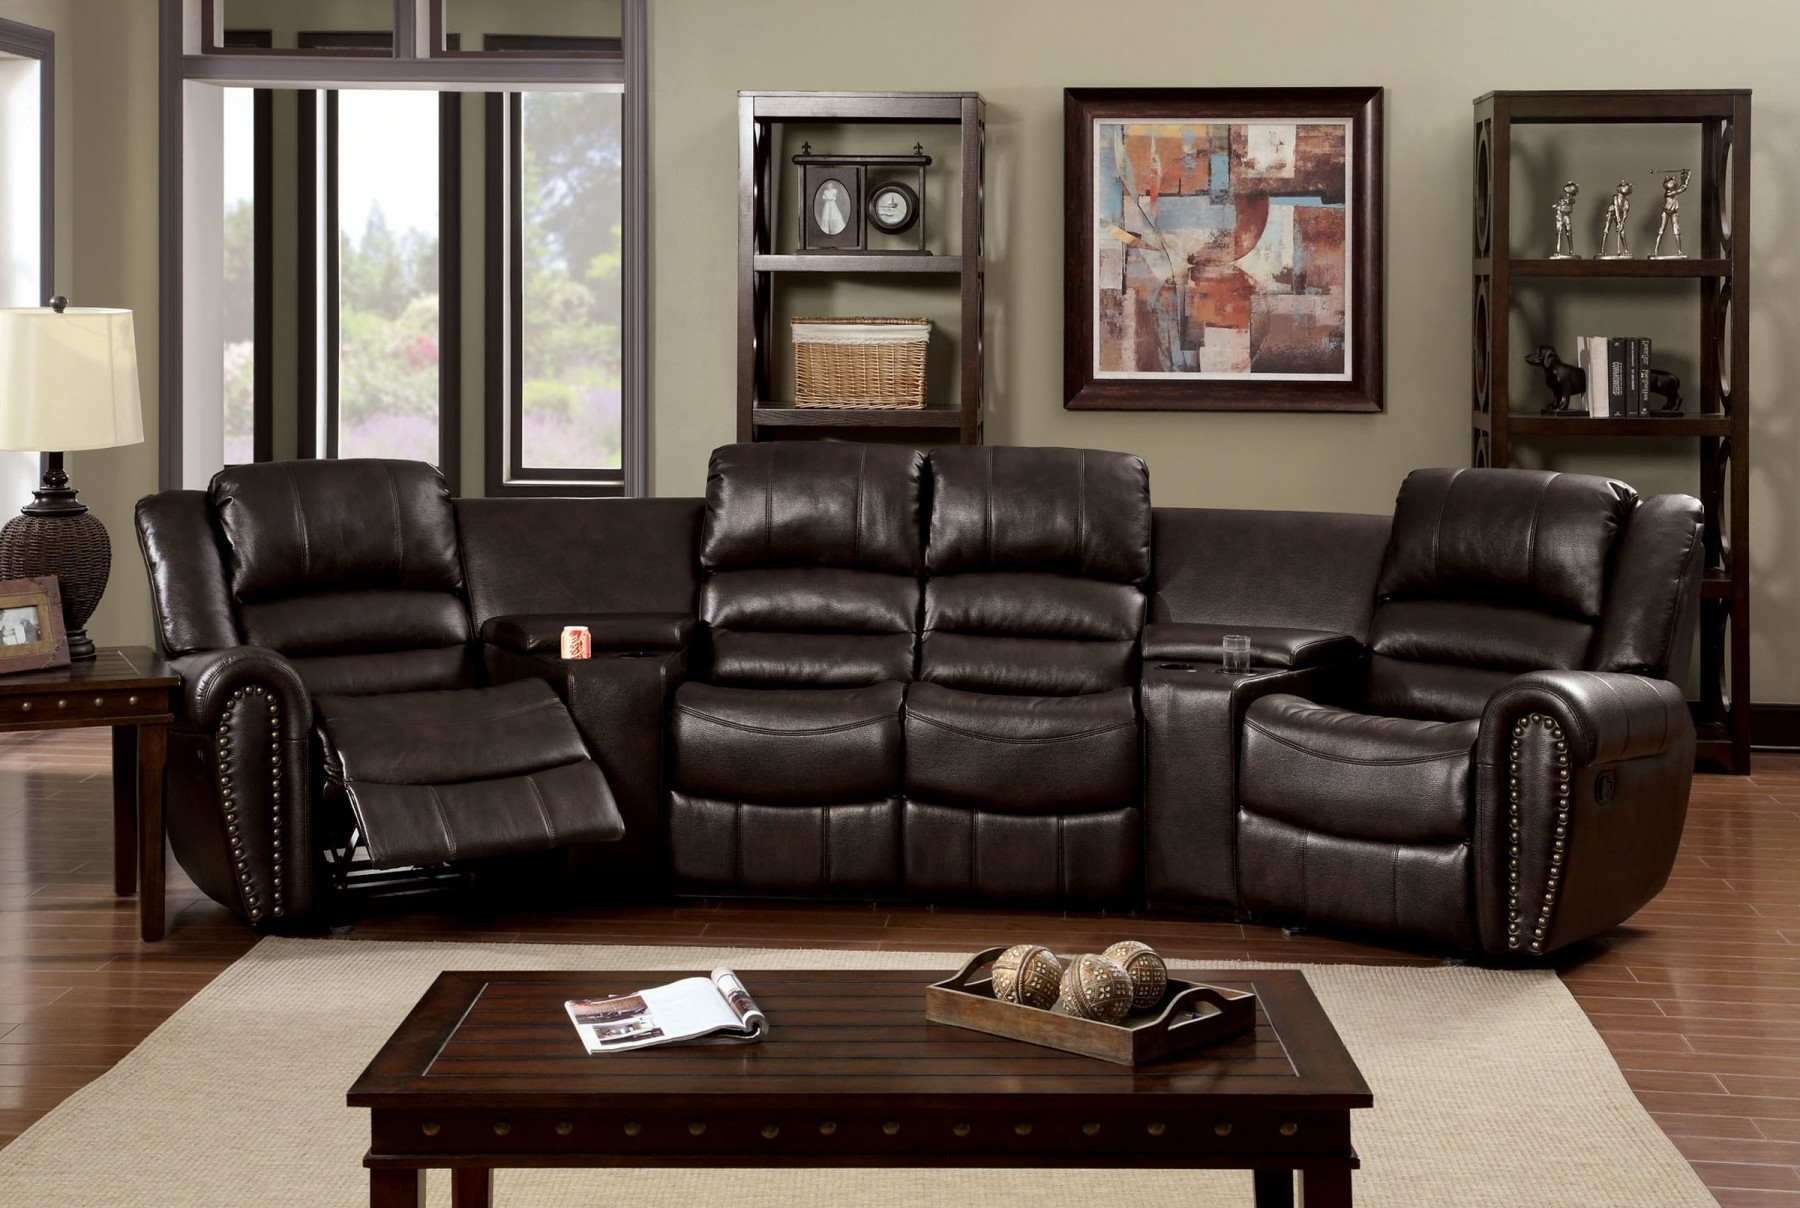 Widely Used Sectional Sofas San Antonio Tx Throughout Sectional Sofas In San Antonio (View 4 of 15)